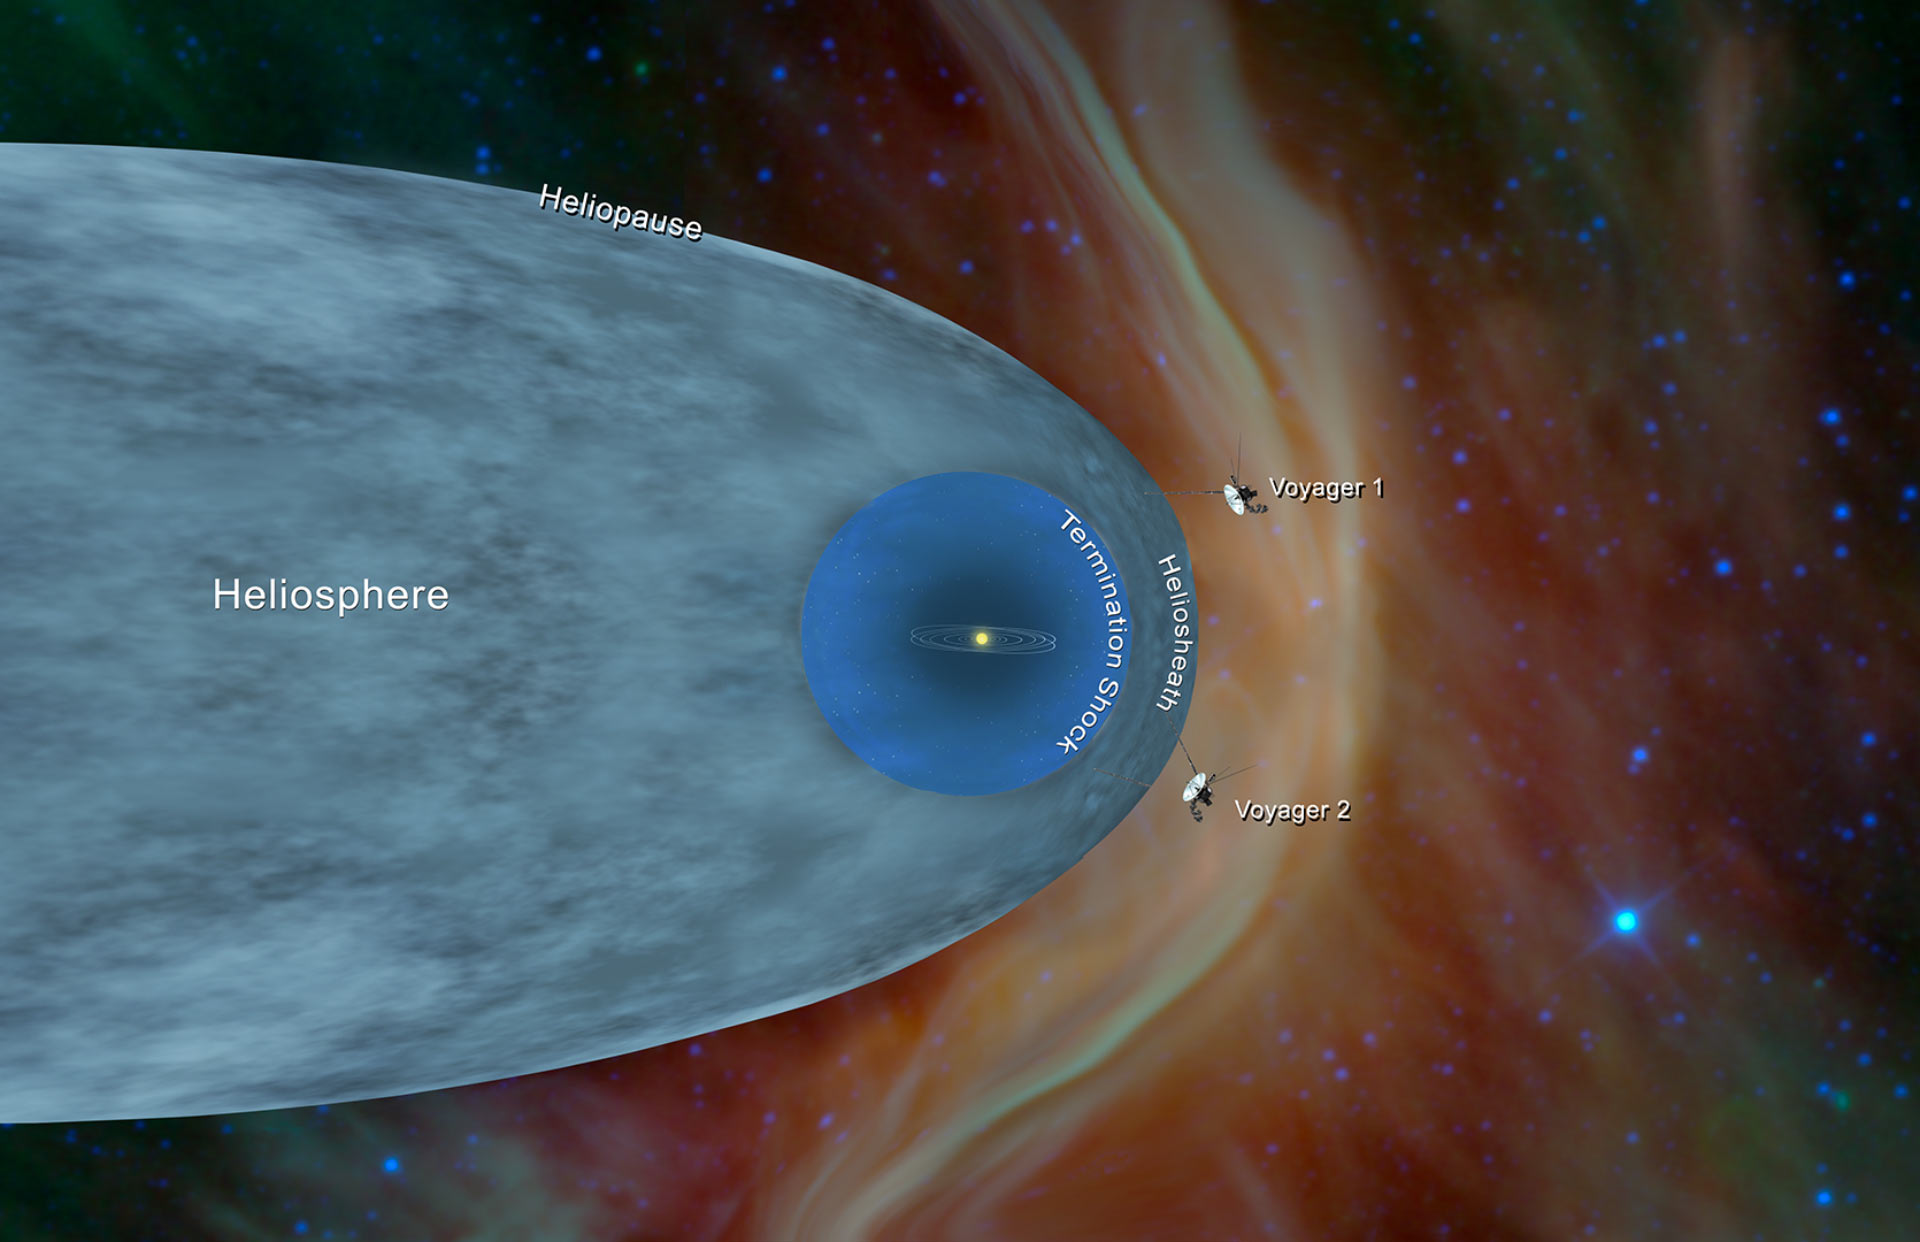 NASA's intrepid Voyager 2 probe crosses into interstellar space